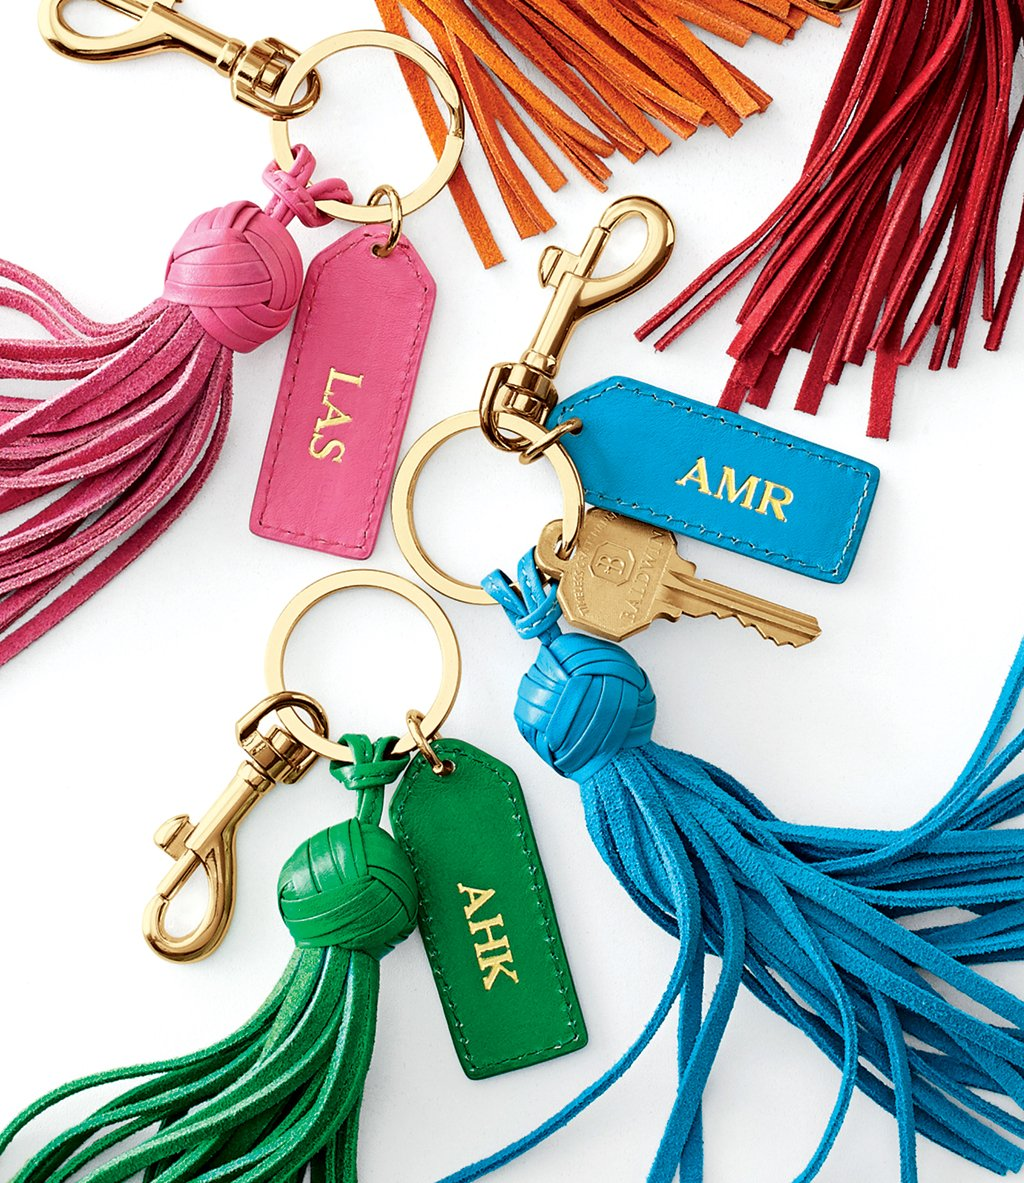 Best of Washington. Everything monogrammed (like these Mark & Graham key chains) is trending right now for gifts. They're individualized without being to personal.